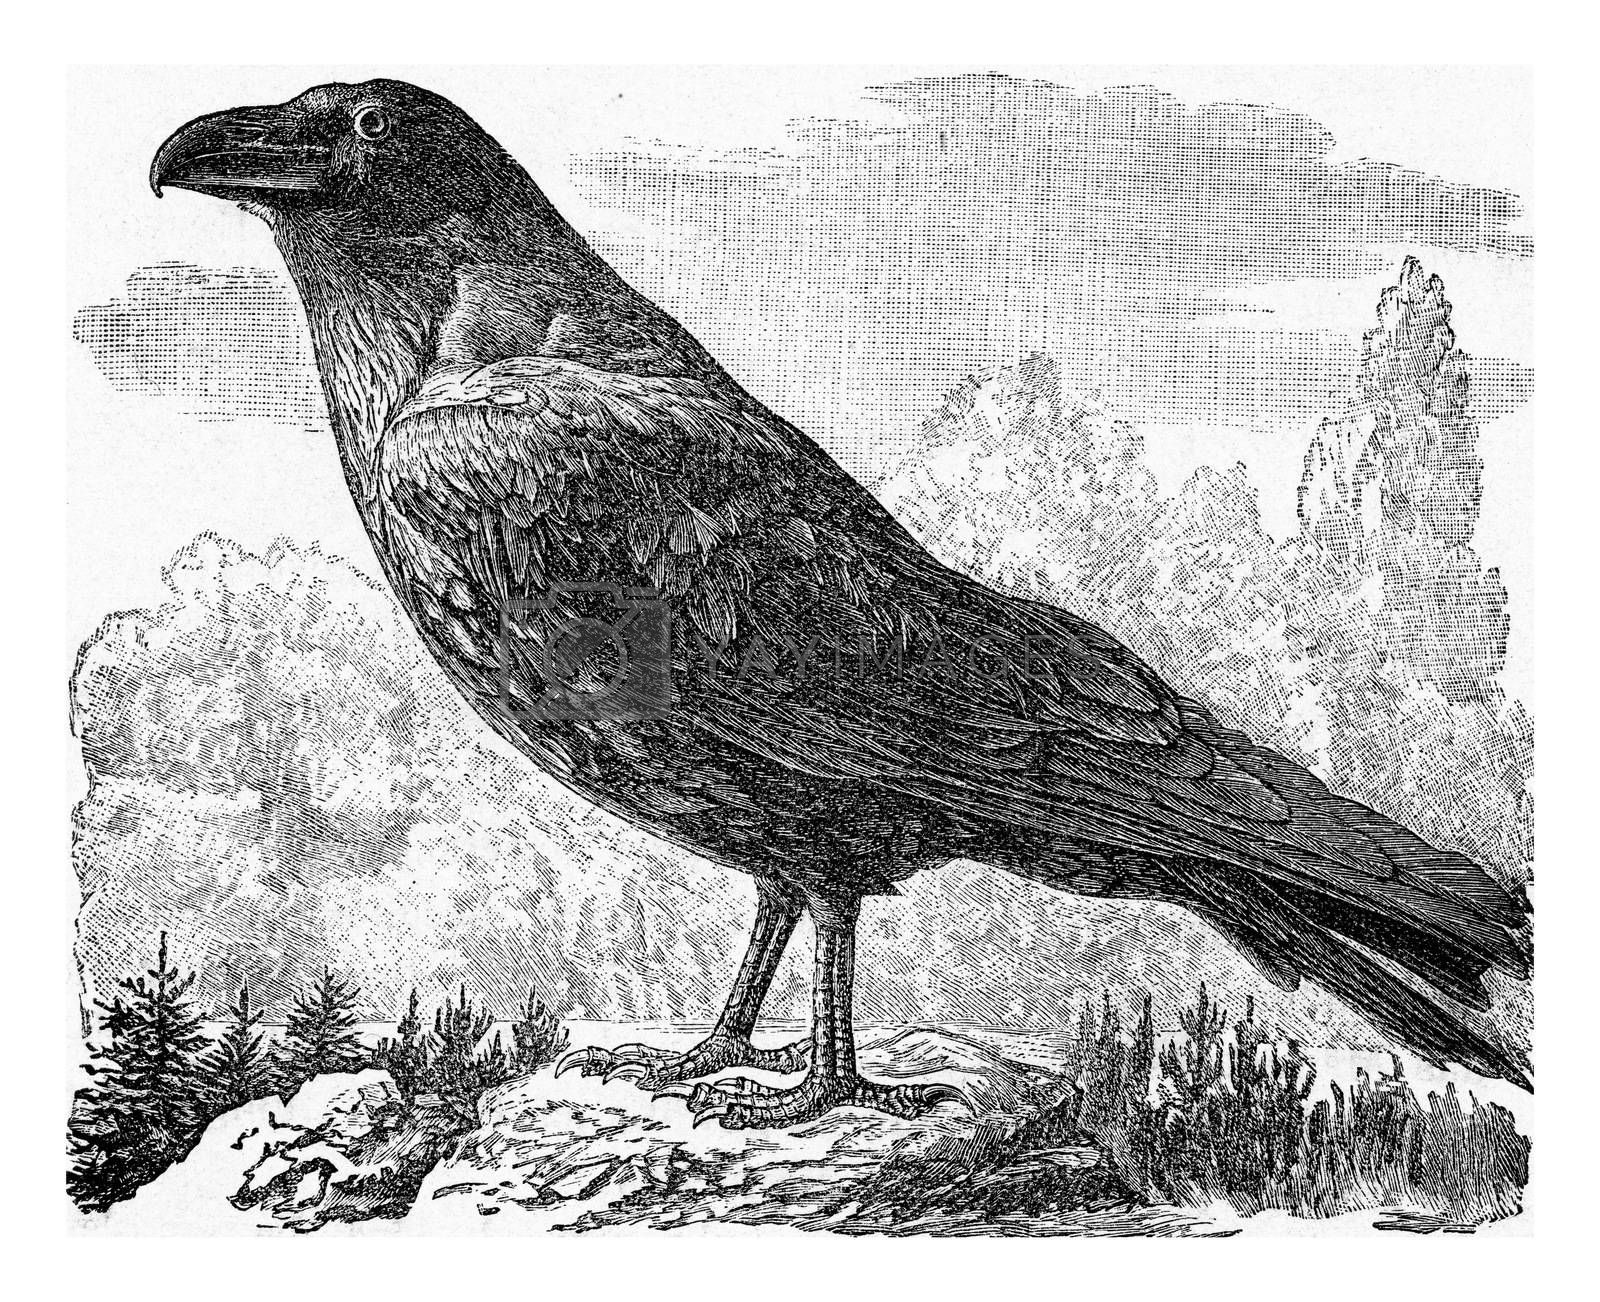 The raven, vintage engraved illustration. From Deutch Vogel Teaching in Zoology.